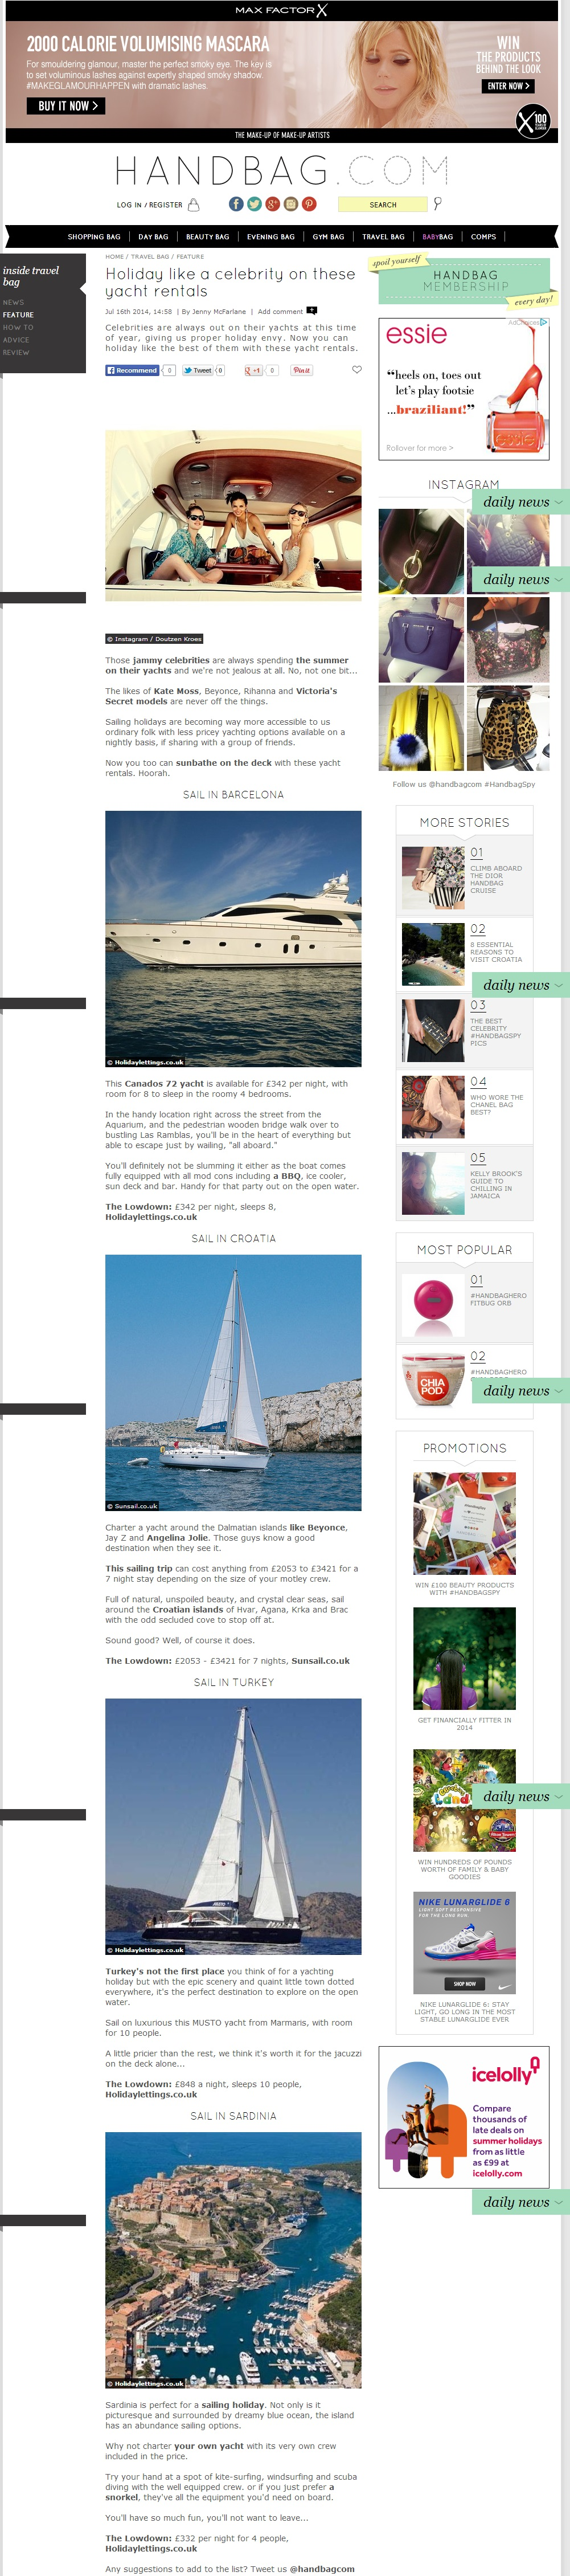 screencapture-www-handbag-com-travel-bag-feature-a584558-holiday-like-a-celebrity-on-these-yacht-rentals-html